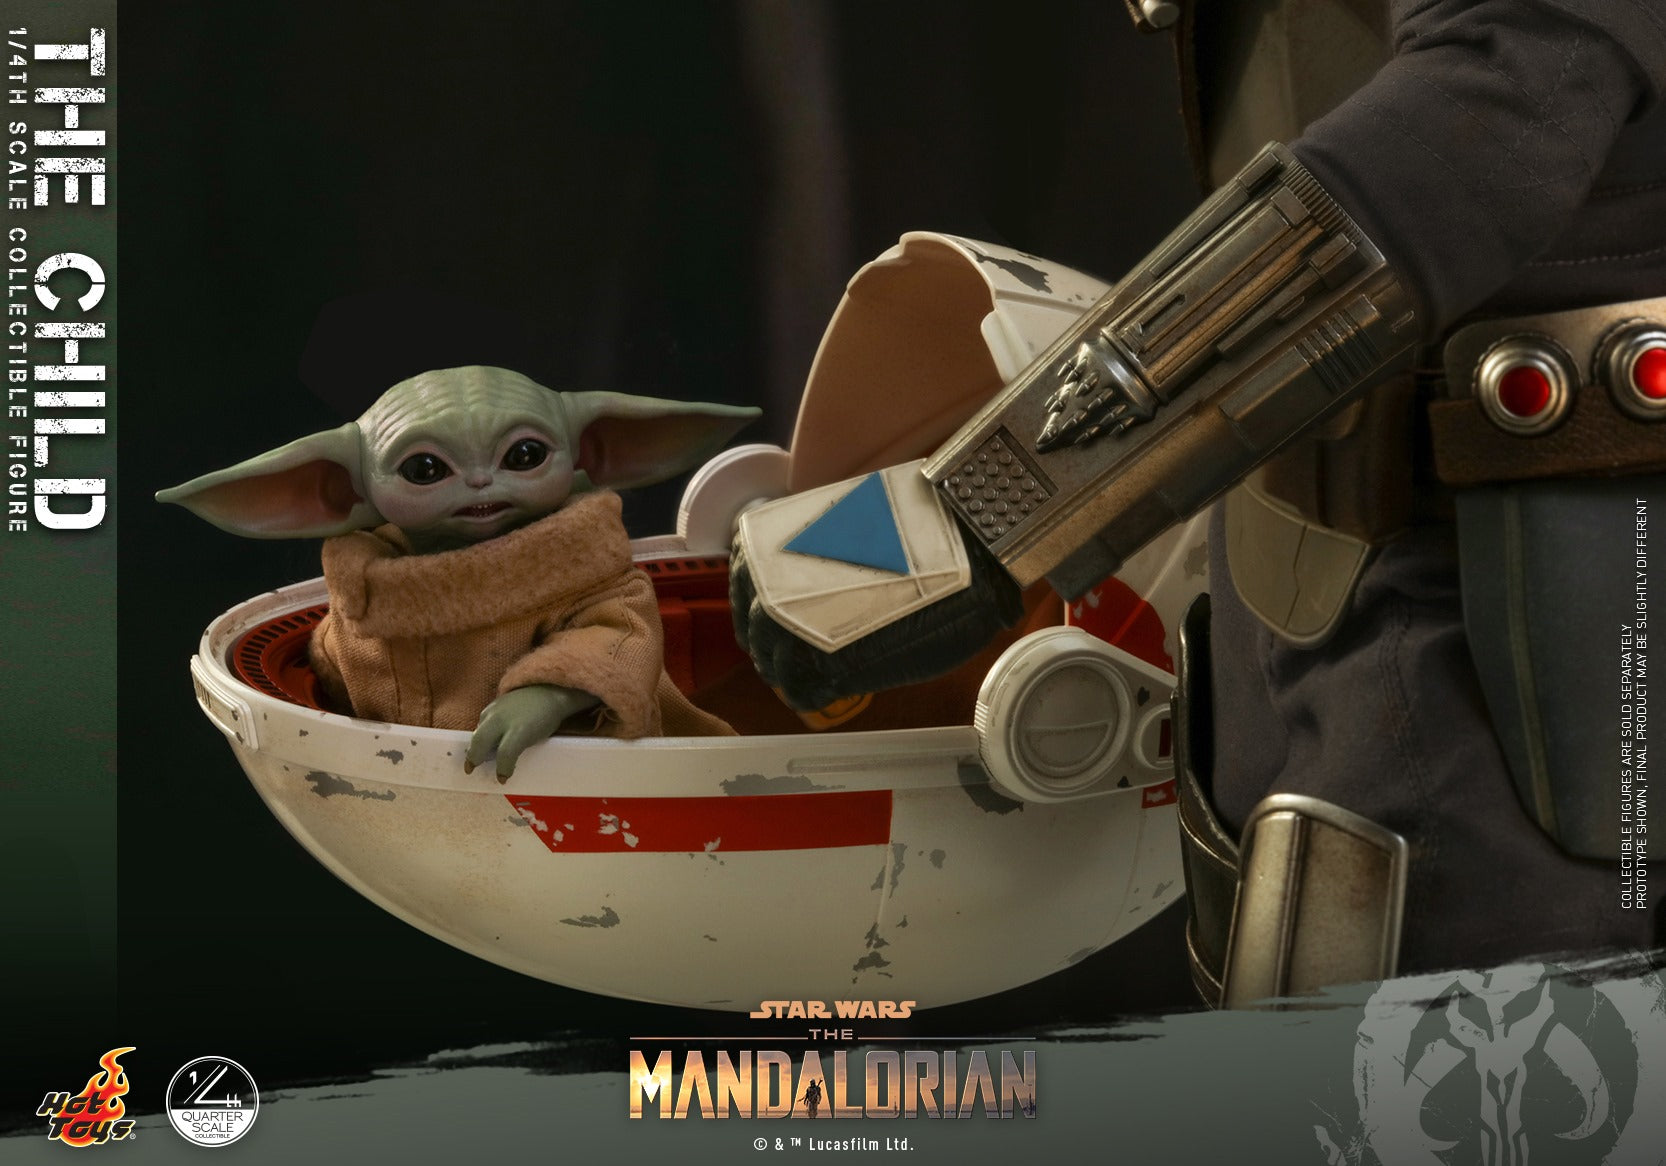 Hot Toys - QS018 - Star Wars: The Mandalorian - The Child (1/4 Scale)